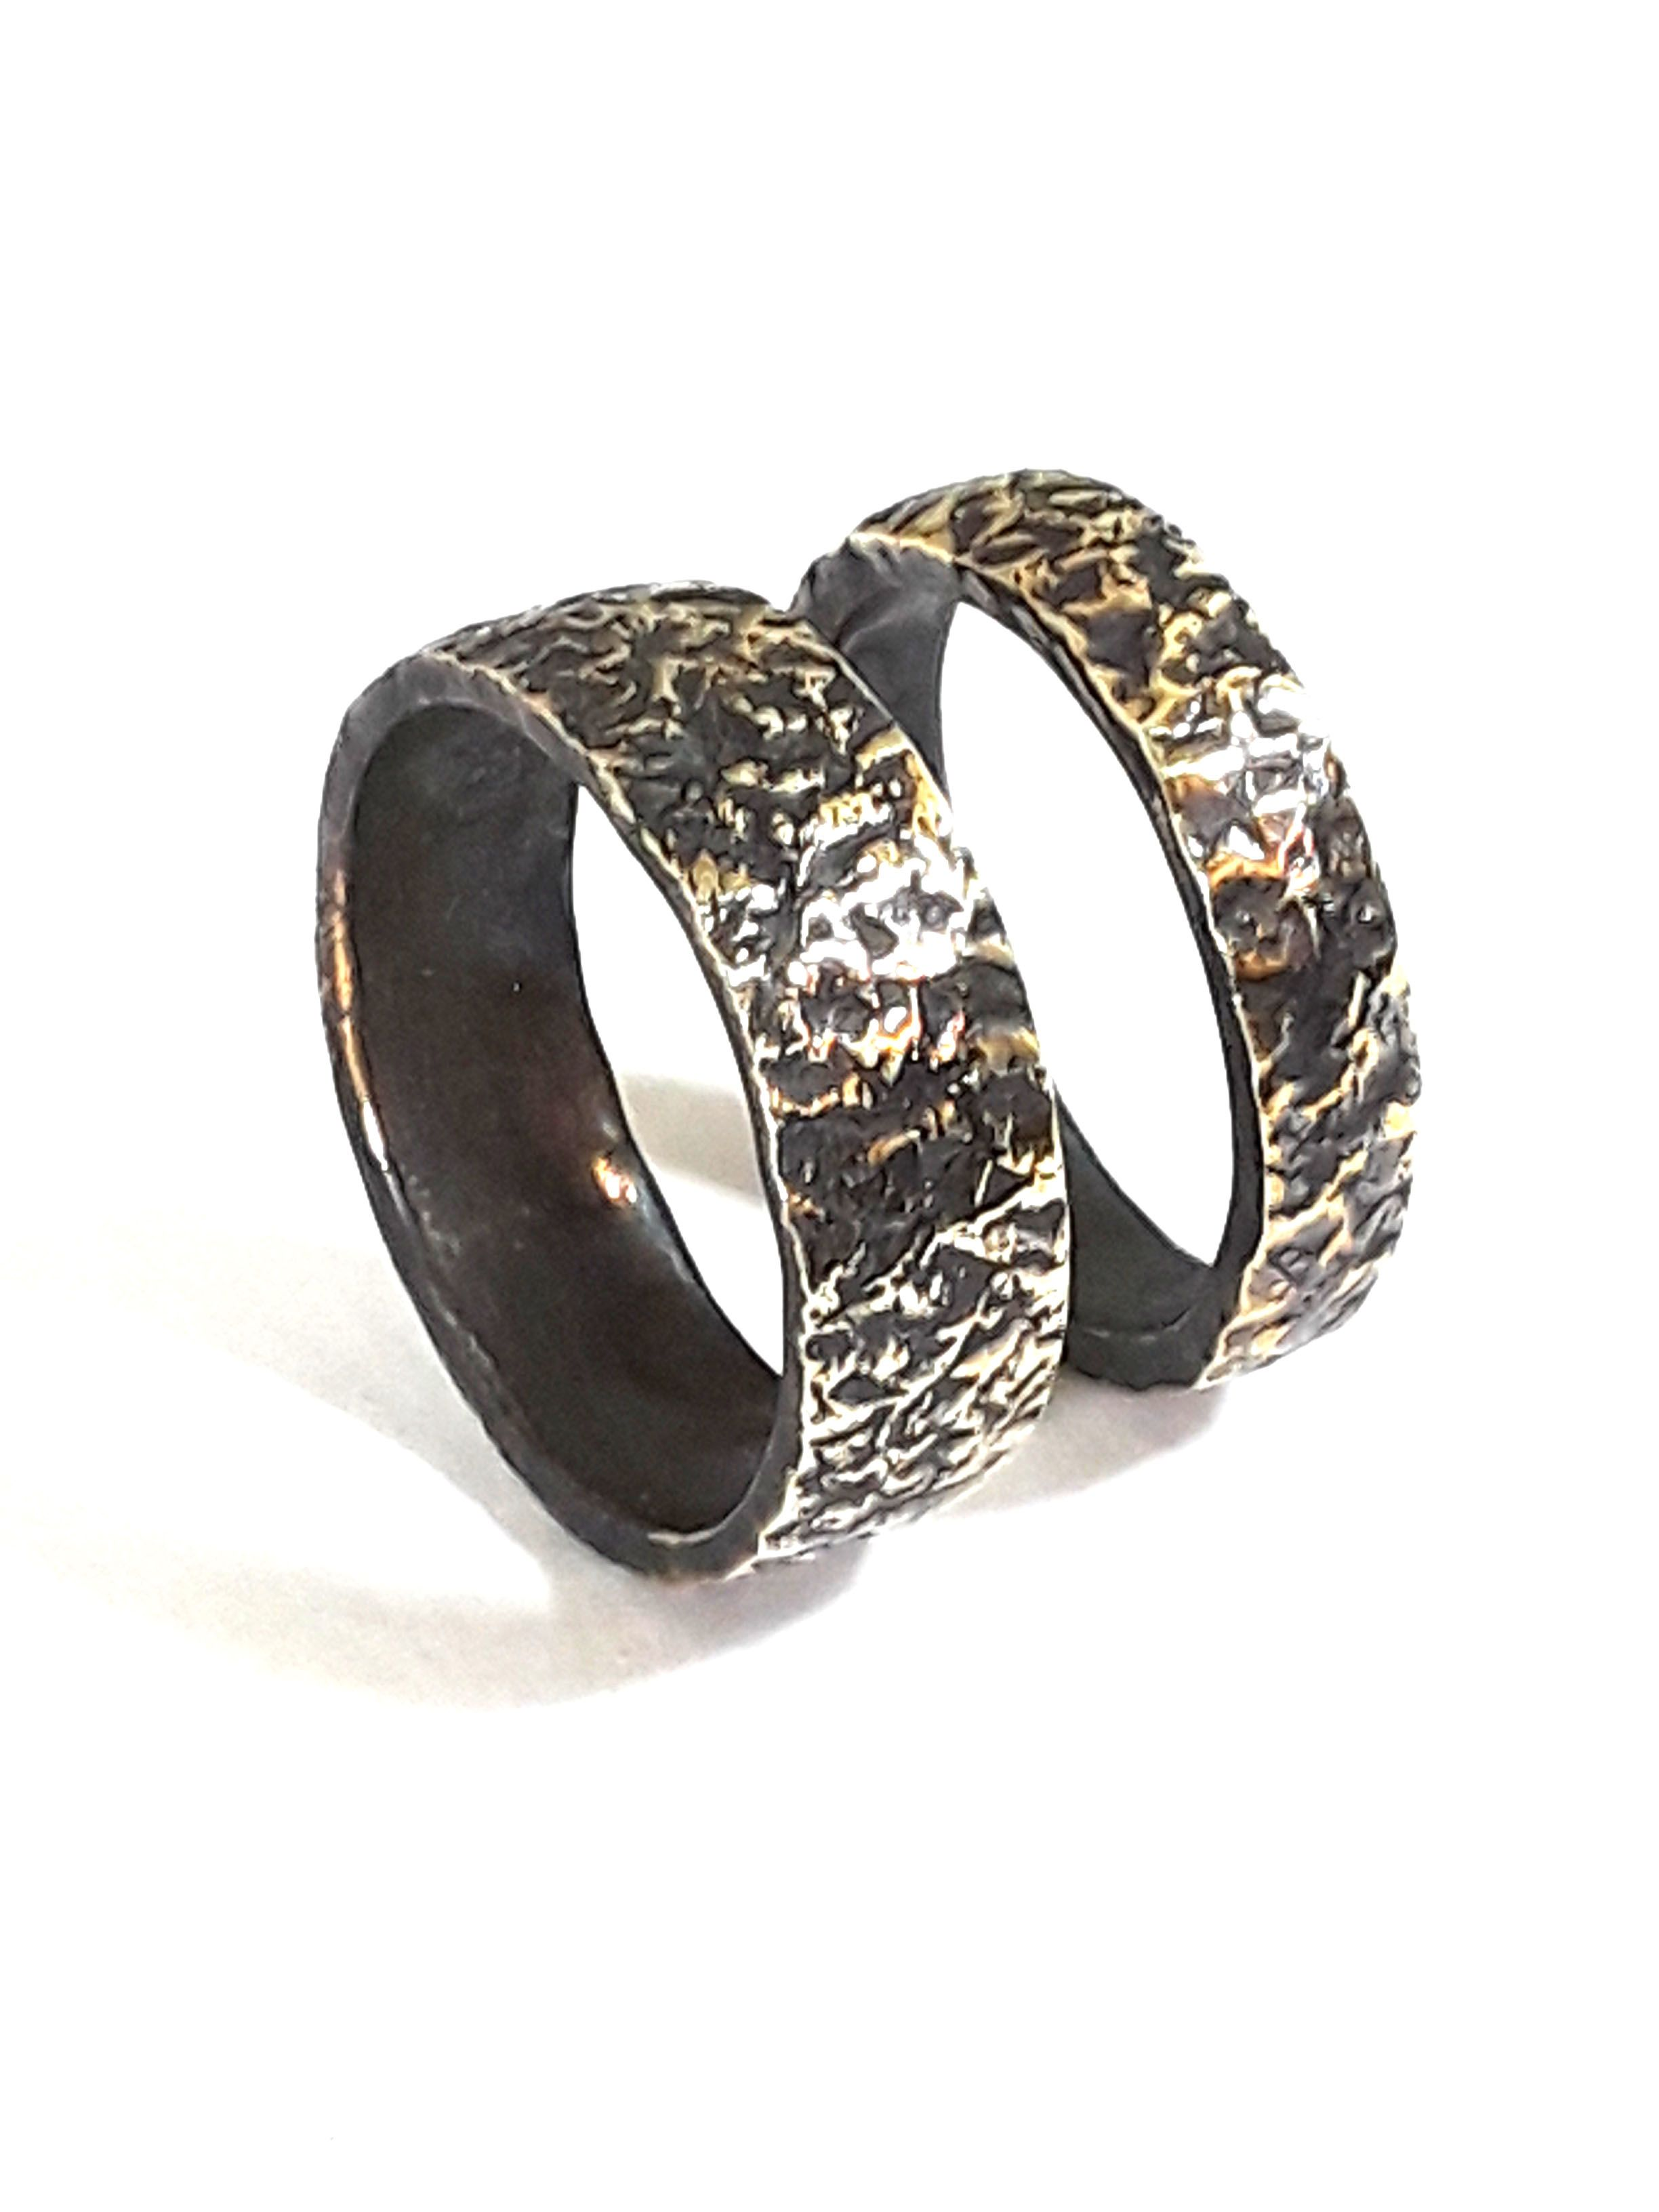 Pin by Men's Rings on Rings Wedding band sets, Wedding